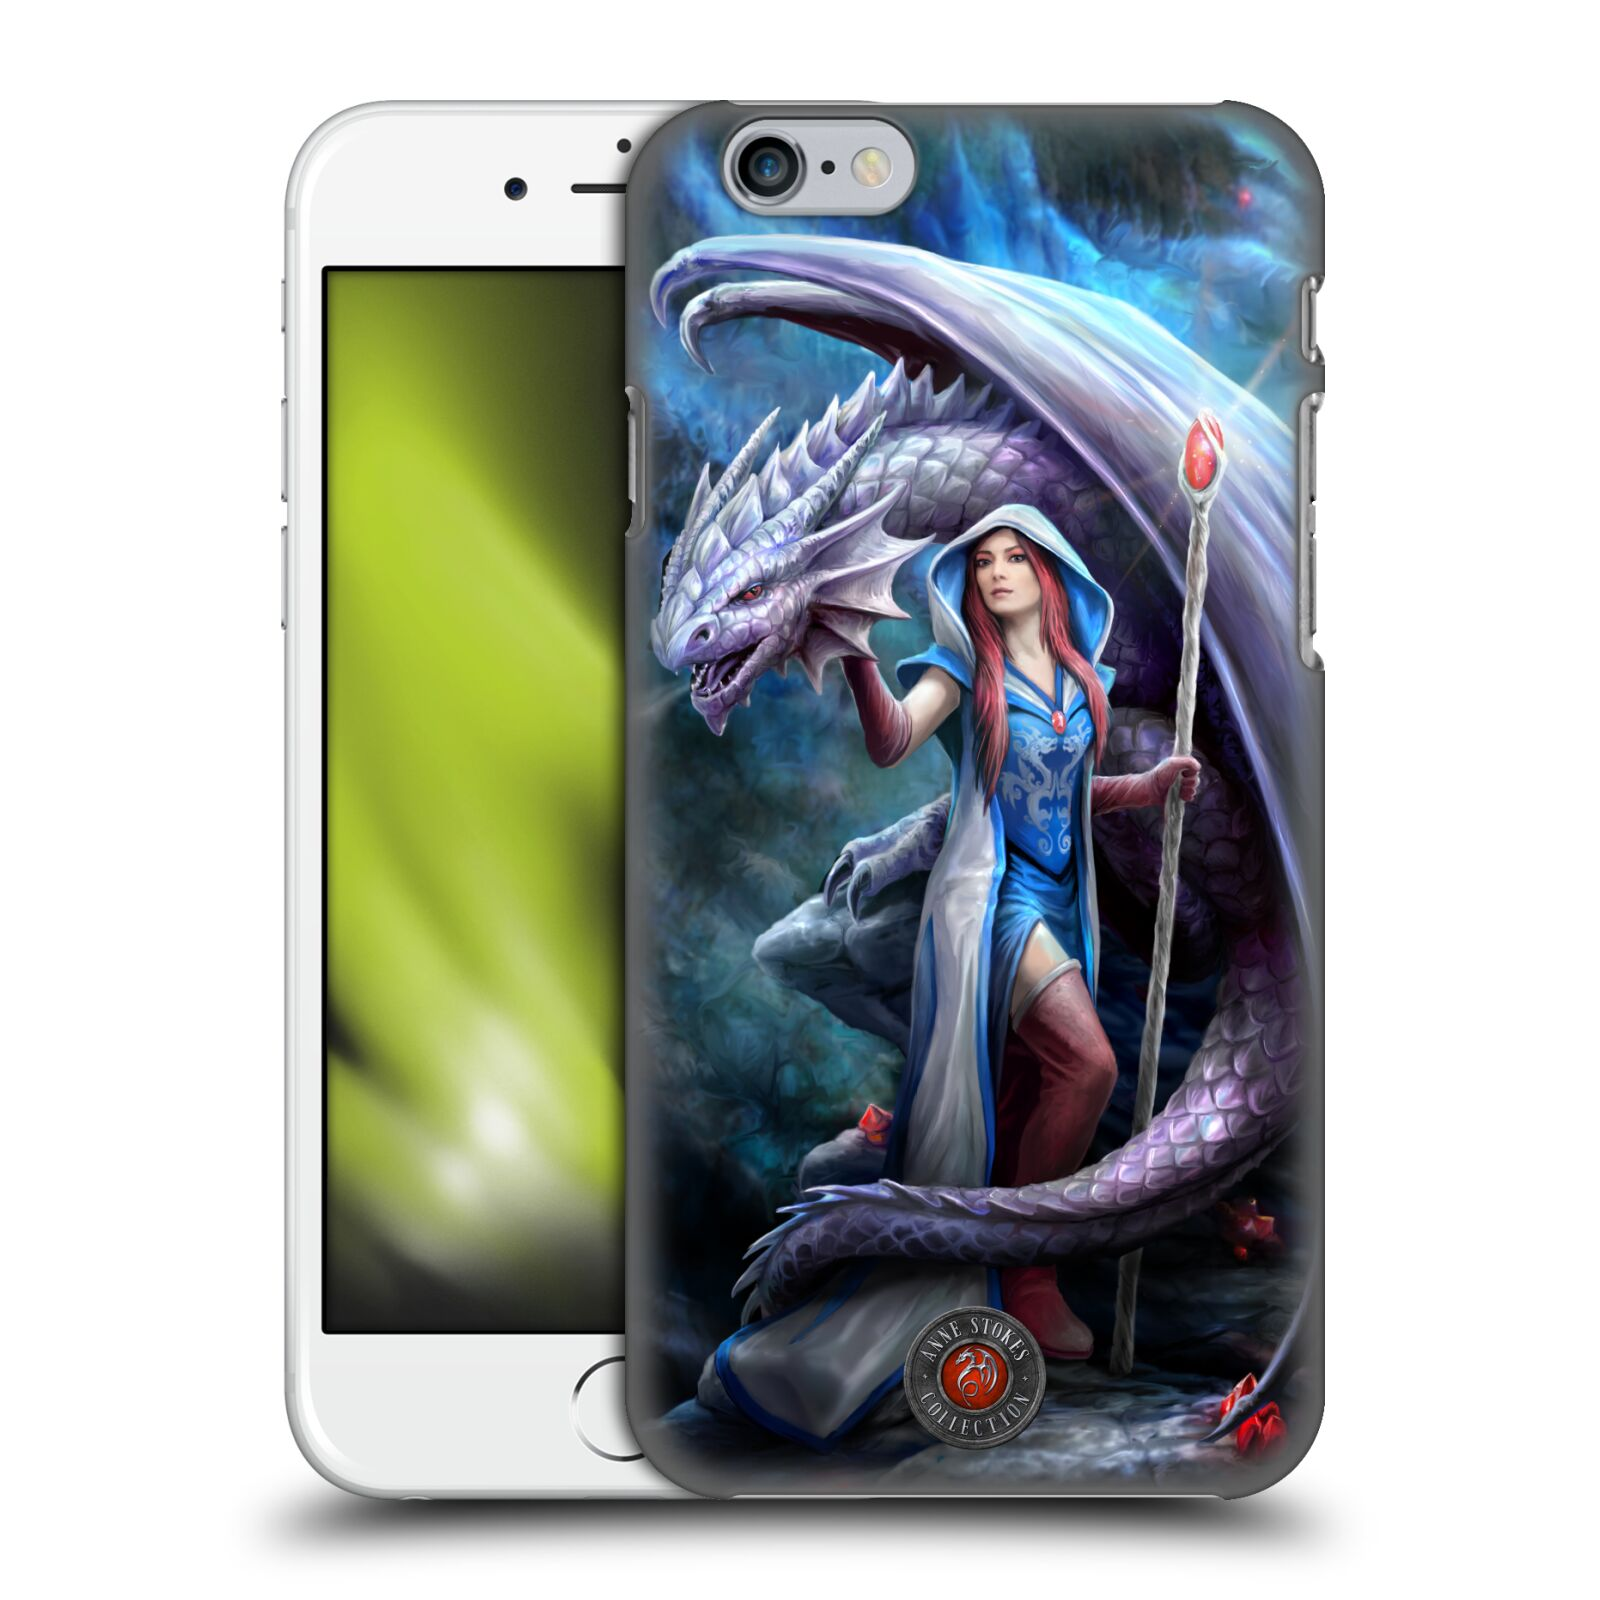 Official Anne Stokes Dragon Friendship 2 Mage Back Case for Apple iPhone 6 / iPhone 6s